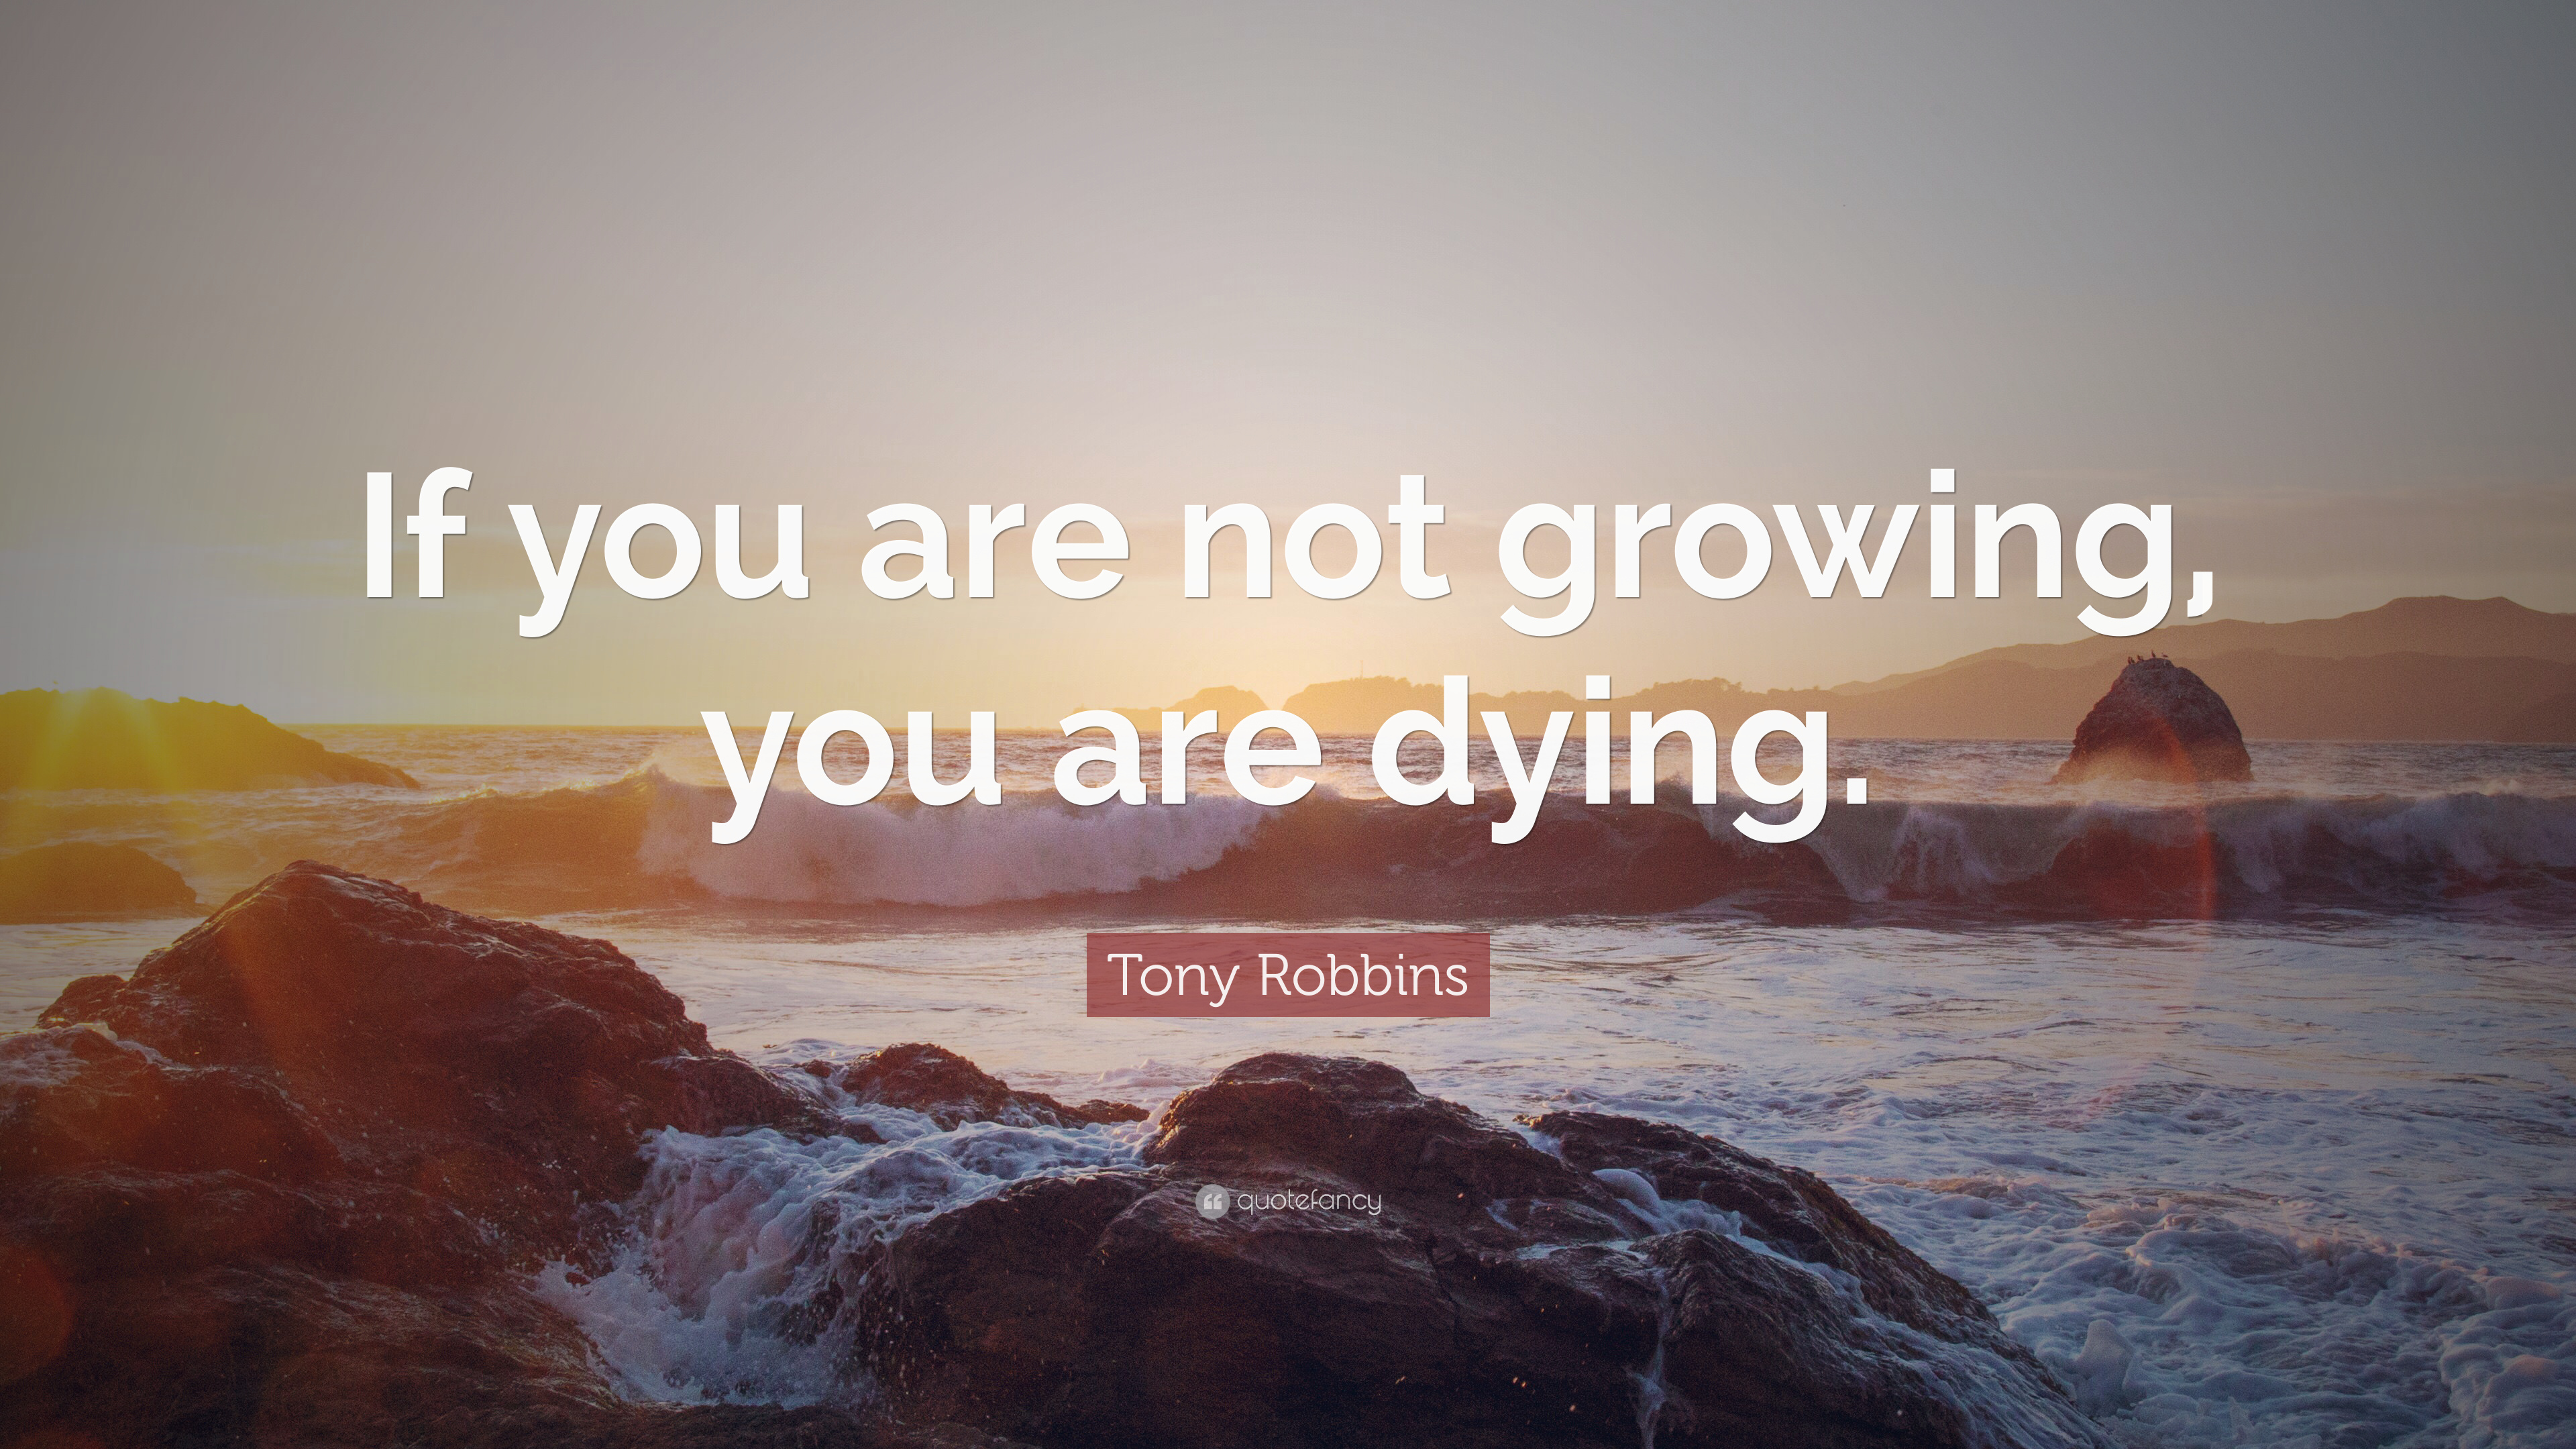 Tony Robbins Quote If You Are Not Growing You Are Dying 9